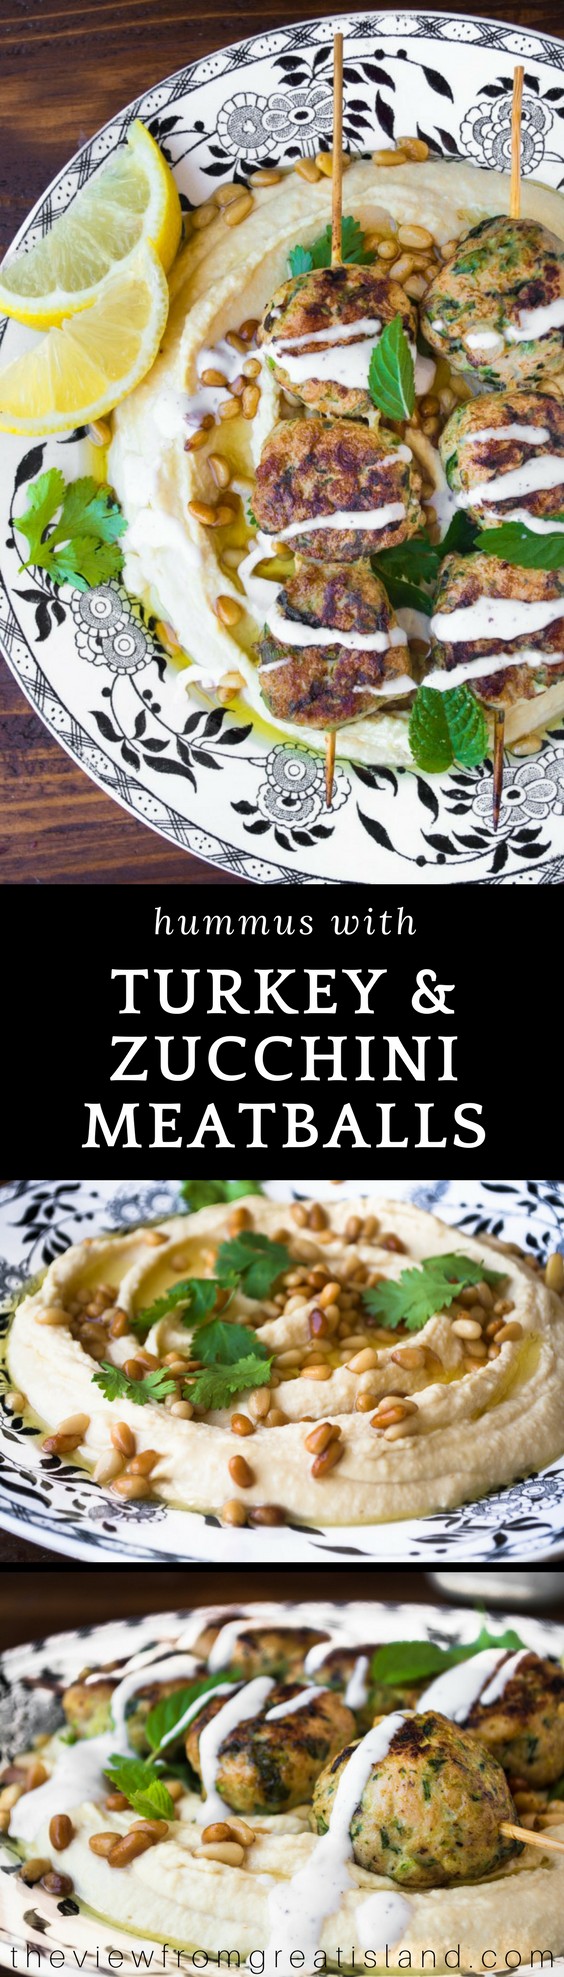 Hummus with Turkey & Zucchini Meatballs Hummus with Turkey & Zucchini Meatballs ~ I made a meal out of my favorite creamy hummus appetizer simply by topping it with tender turkey meatballs lightened up with zucchini.